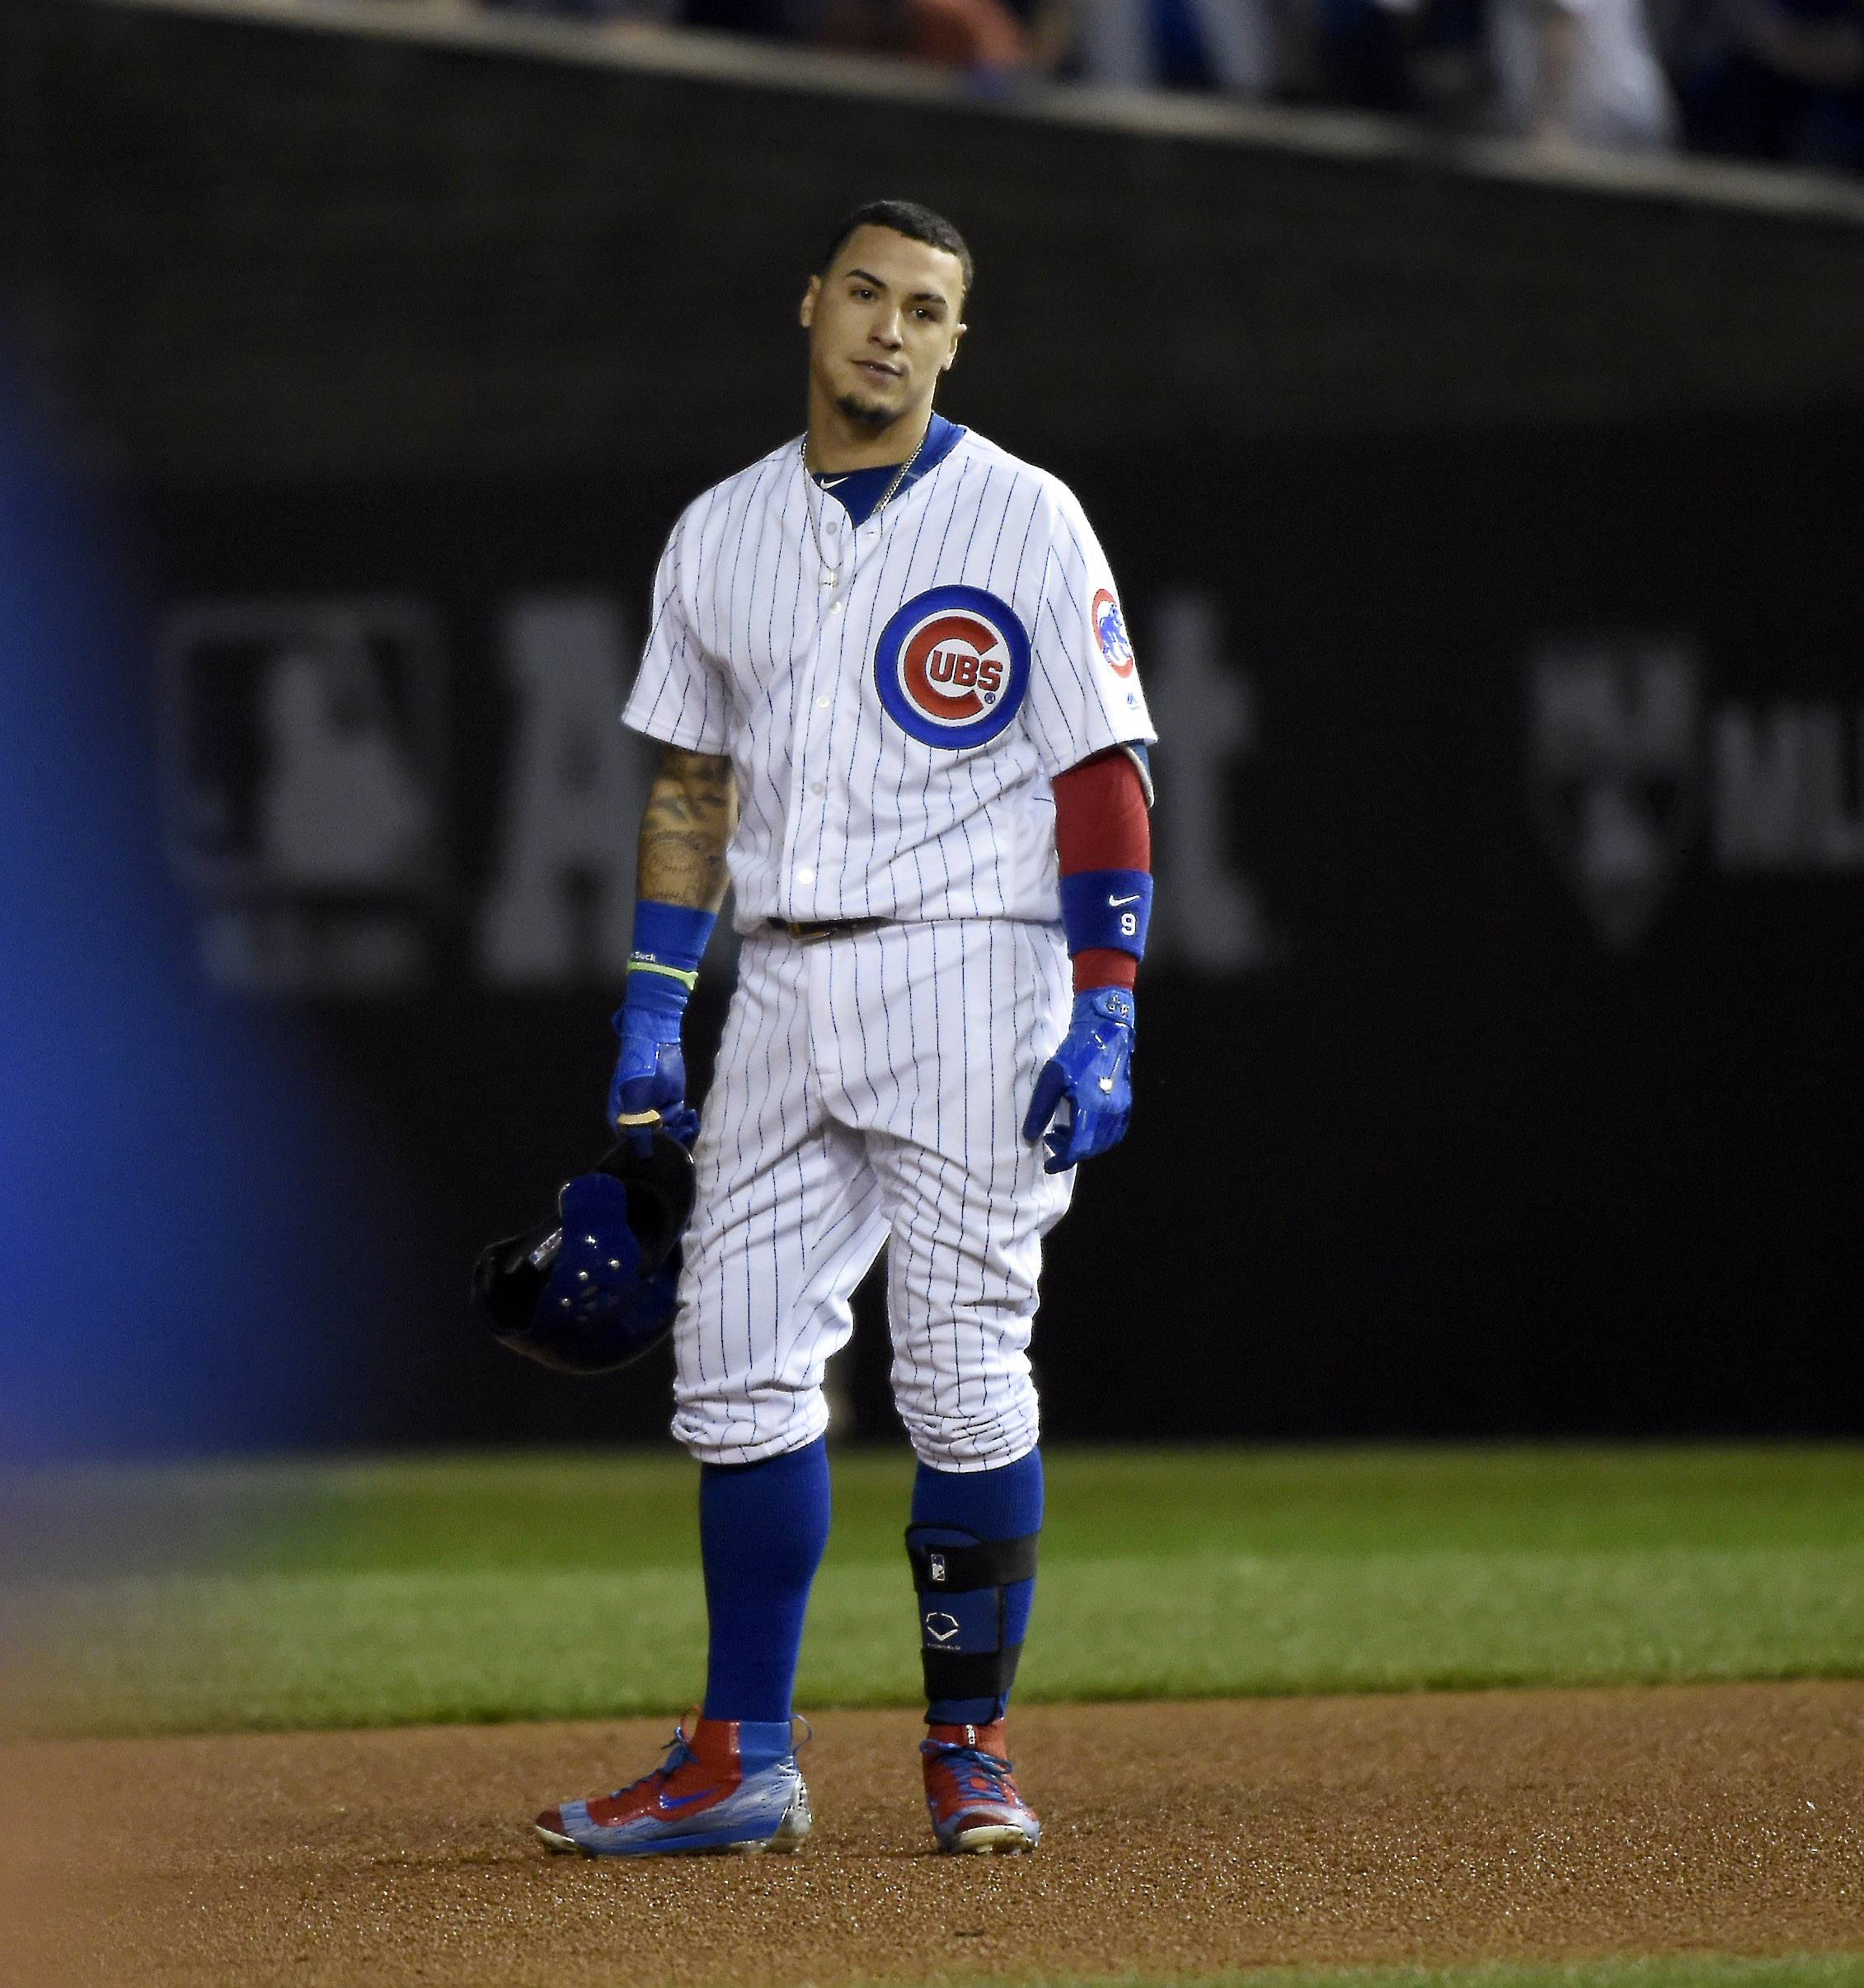 Chicago Cubs third baseman Javier Baez (9) reacts after flying out after flying out in the seventh inning during Game 2 of baseball's National League championship series against the Los Angeles Dodgers, Oct, 16 2016, at Wrigley Field in Chicago.